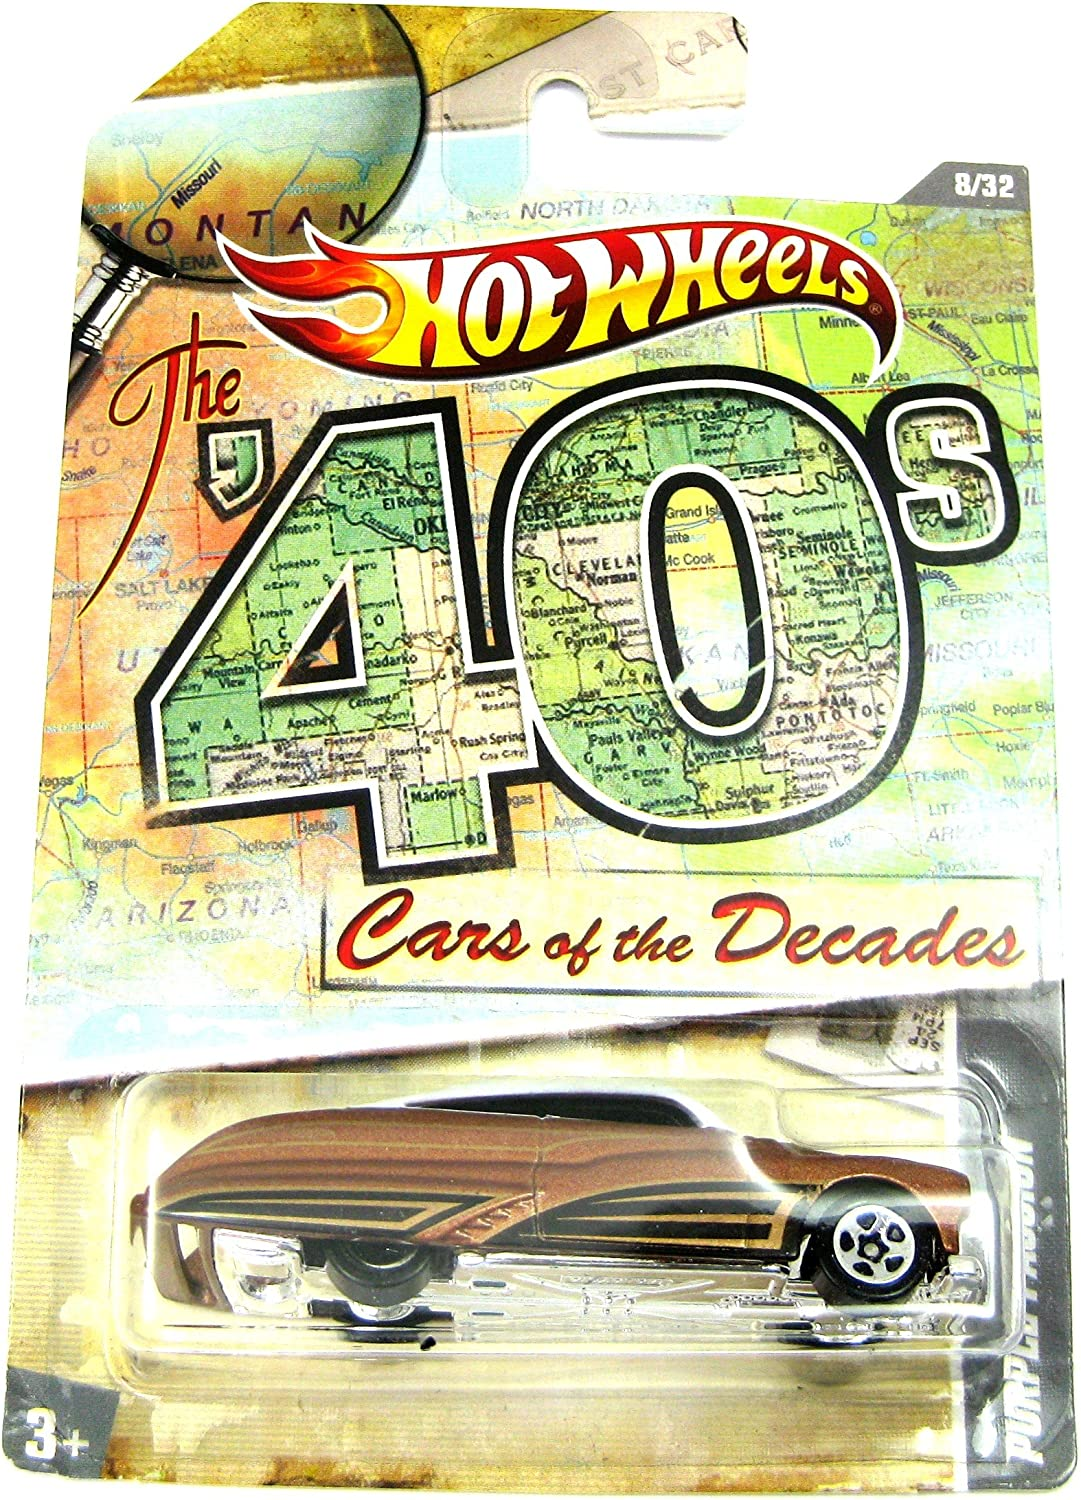 2011 Hot Wheels Cars of the Decades Purple Passion Brown White  8 32 by Hot Wheels